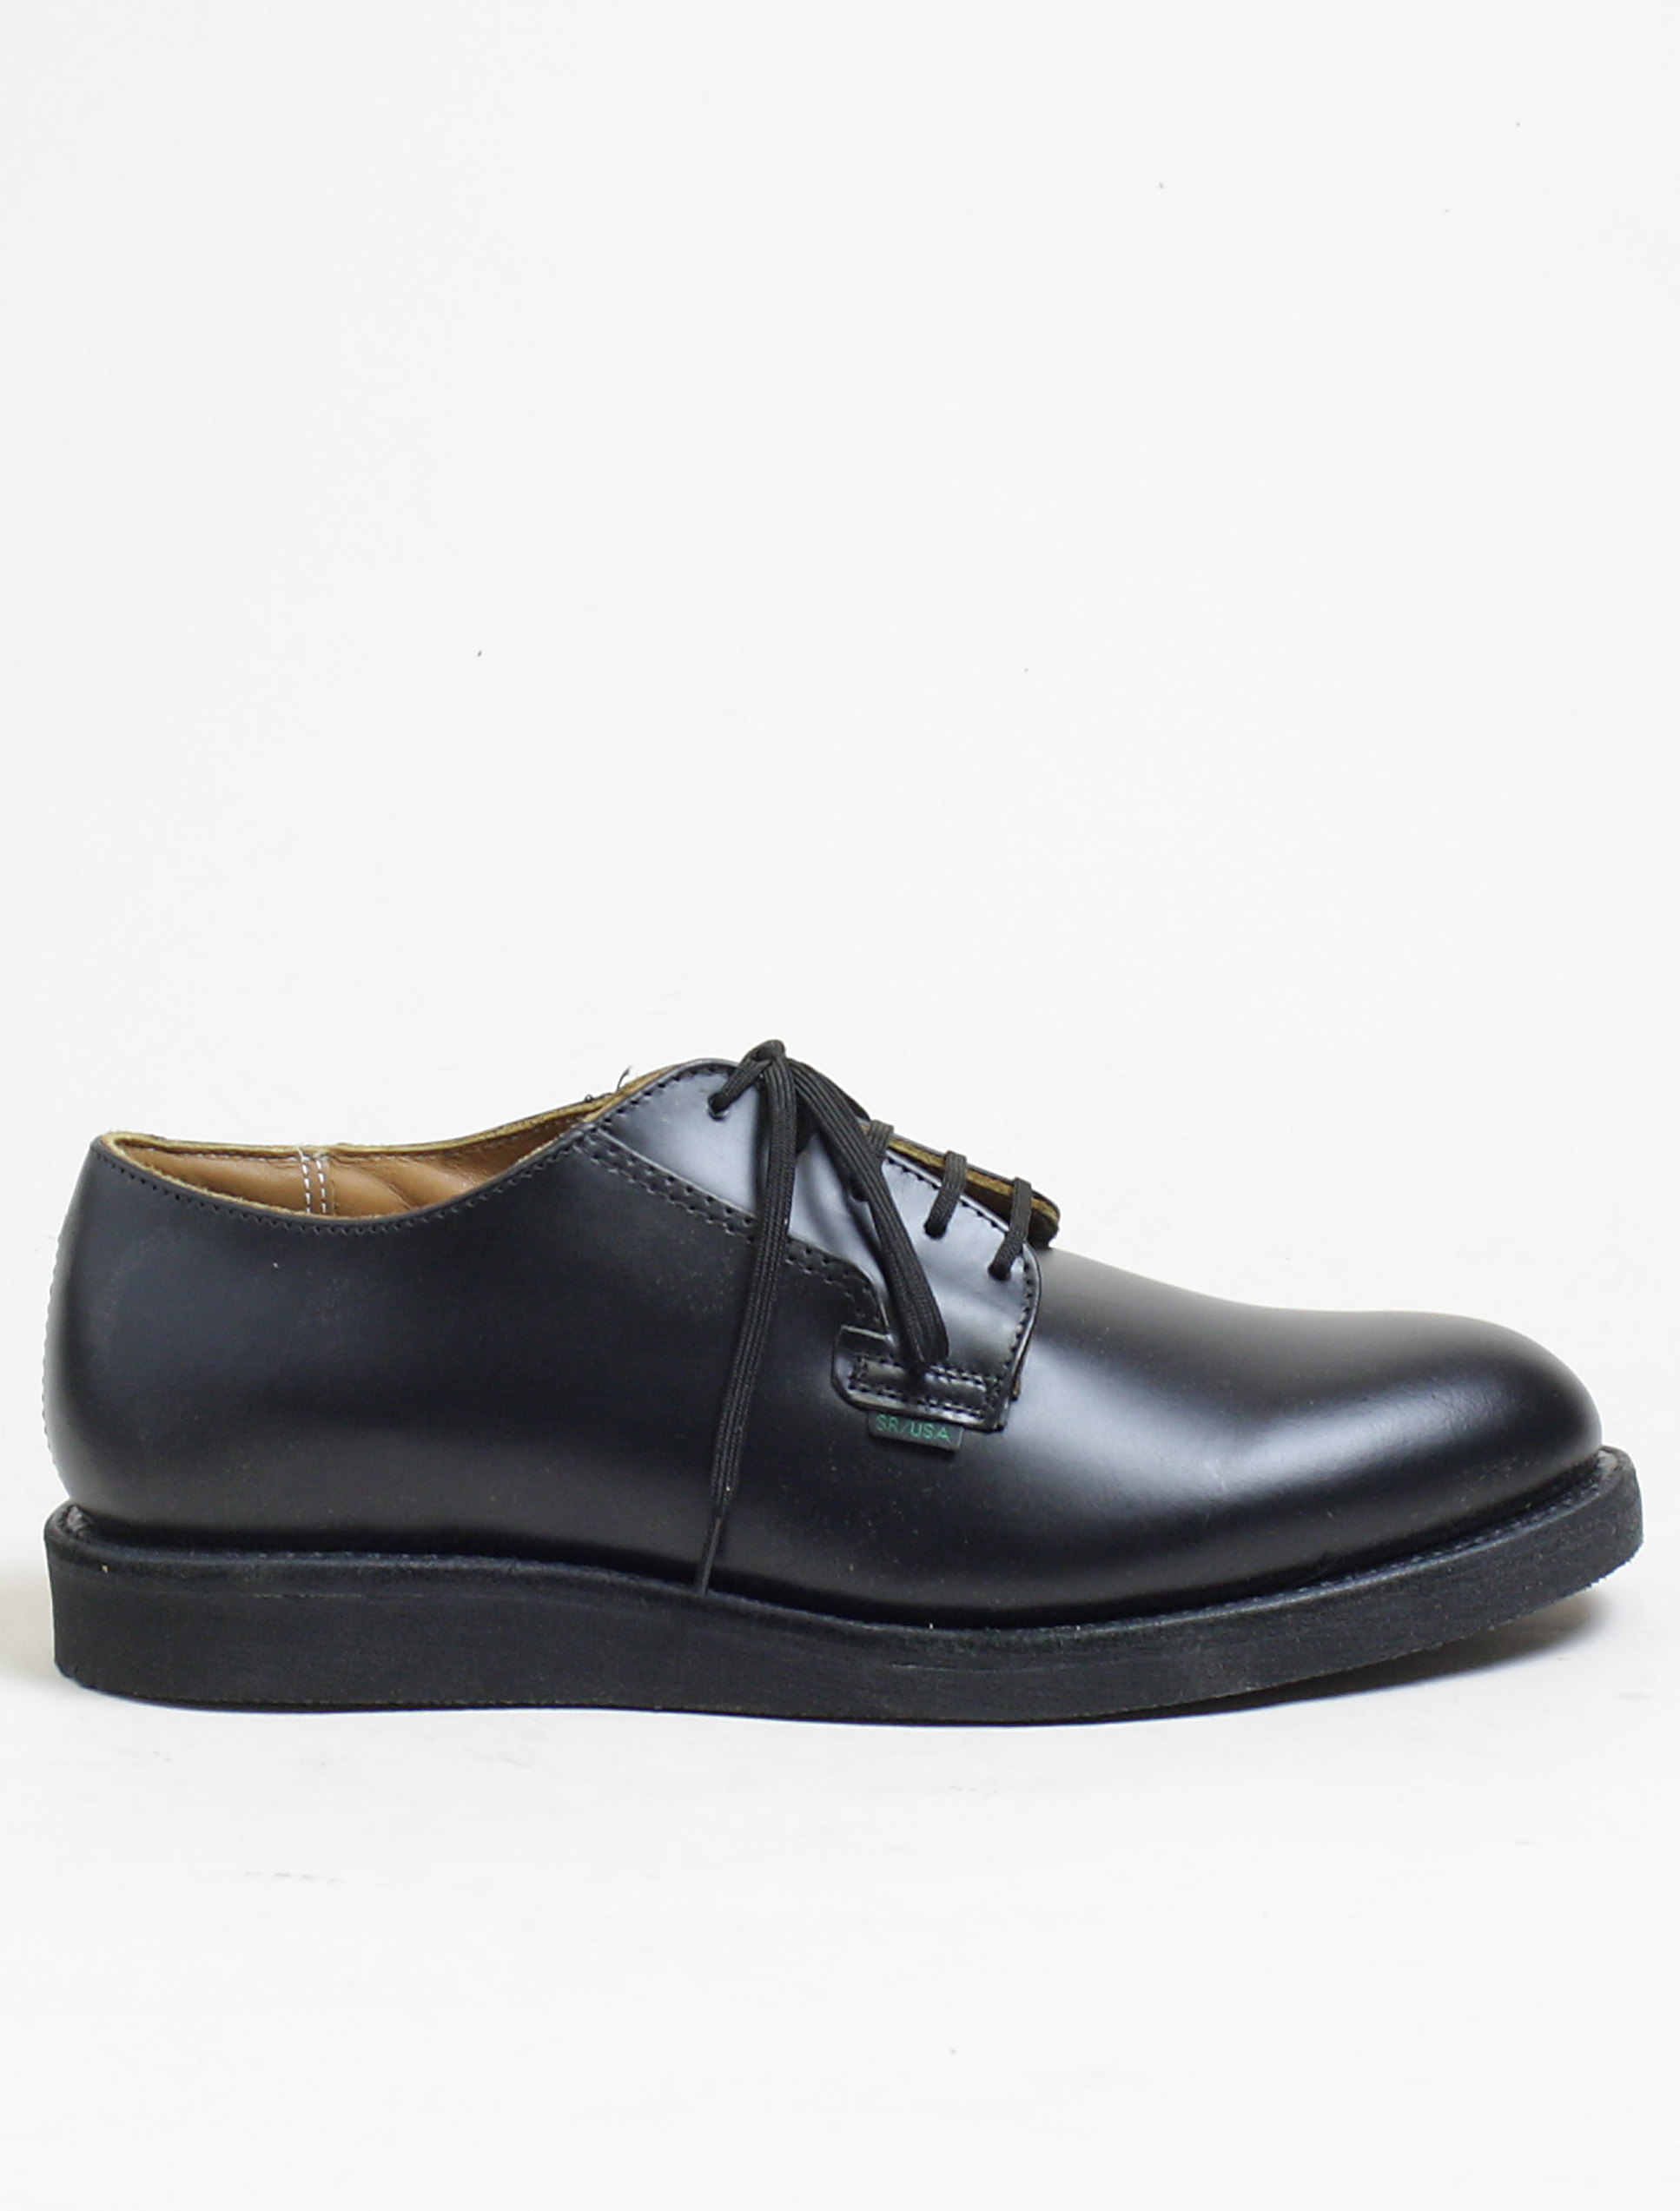 30d04339 Red Wing 101 Postman Oxford black: Red Wing Shoes